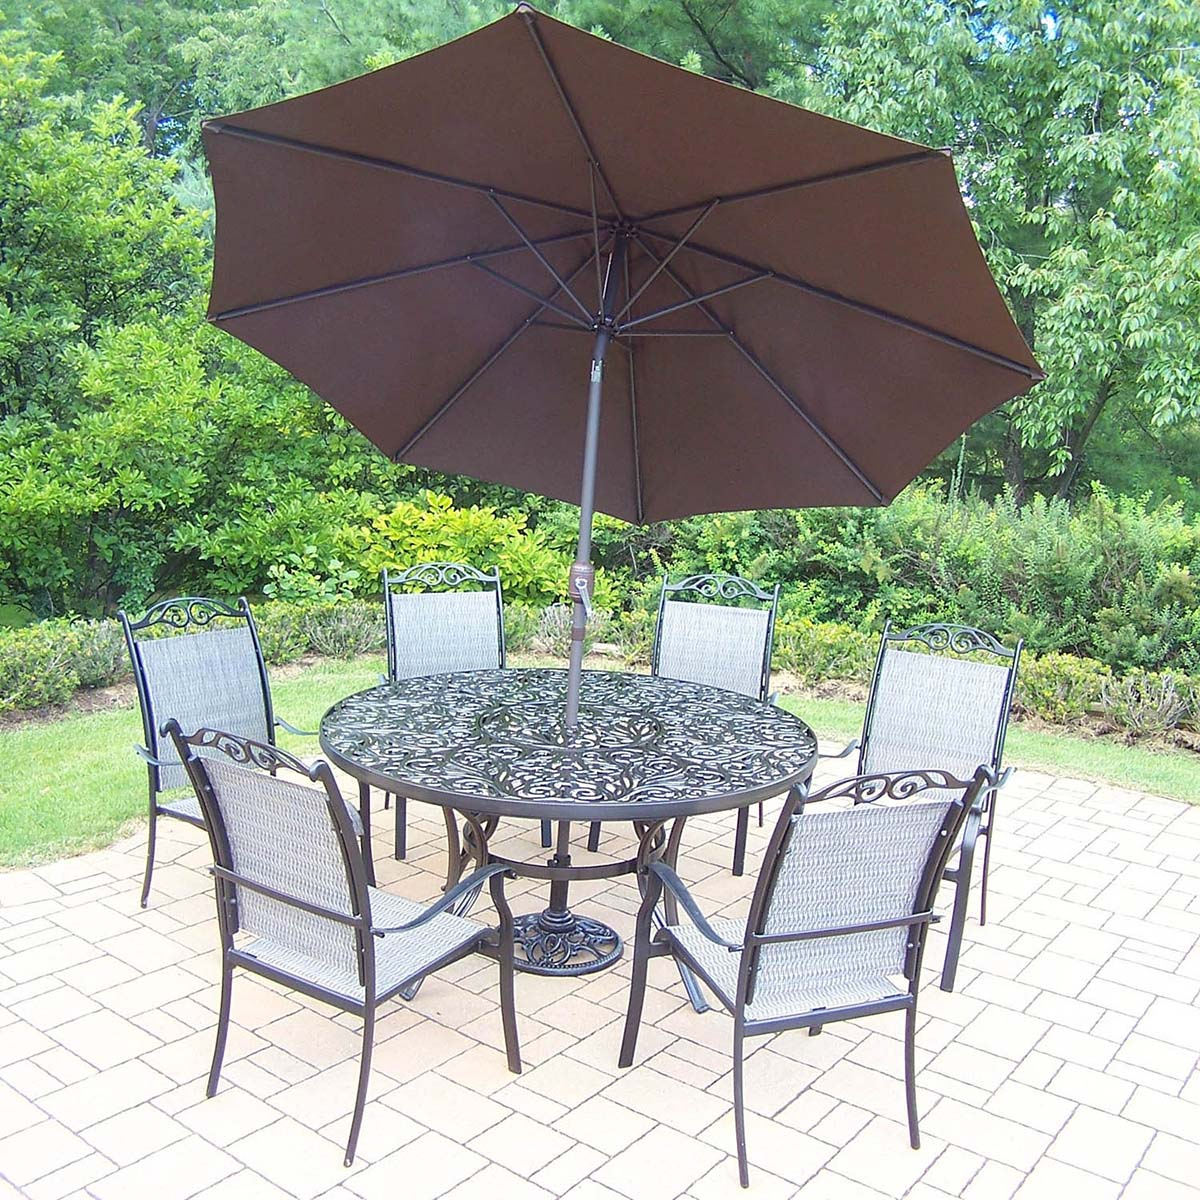 High-class Black-Set-Table-Stackable-Chairs-Umbrella Product Picture 245